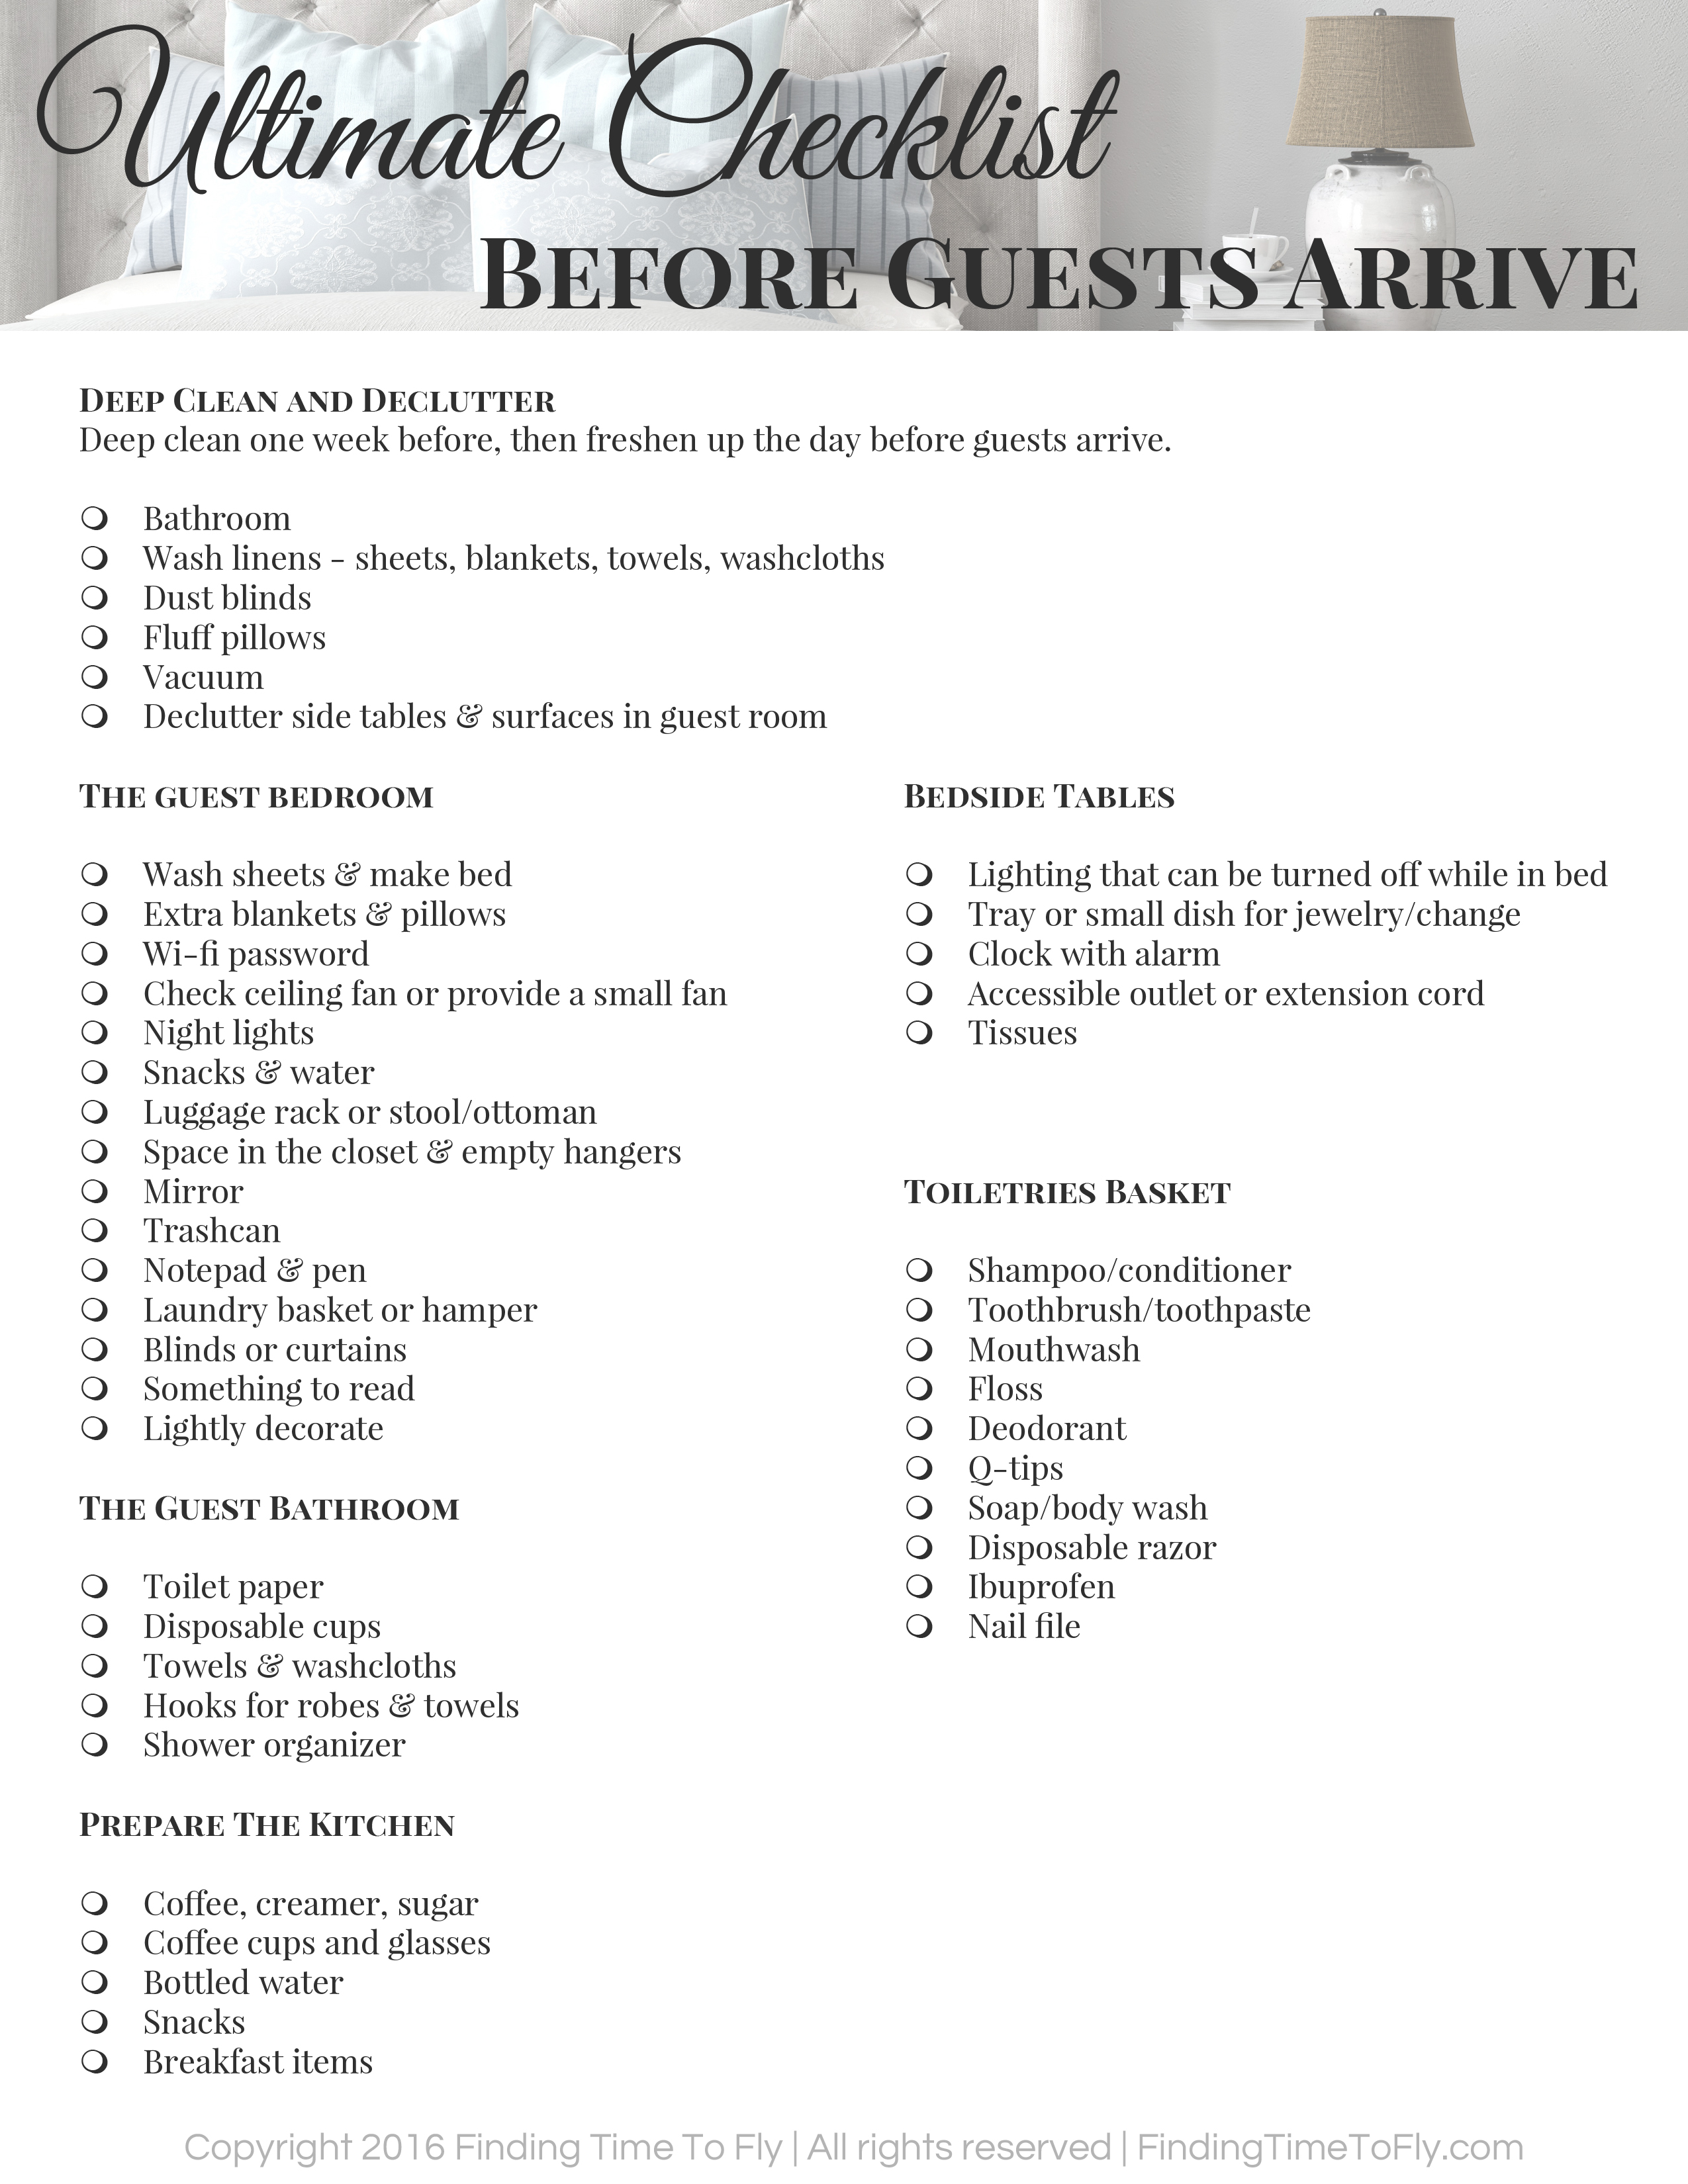 ultimate-checklist-before-guests-arrive